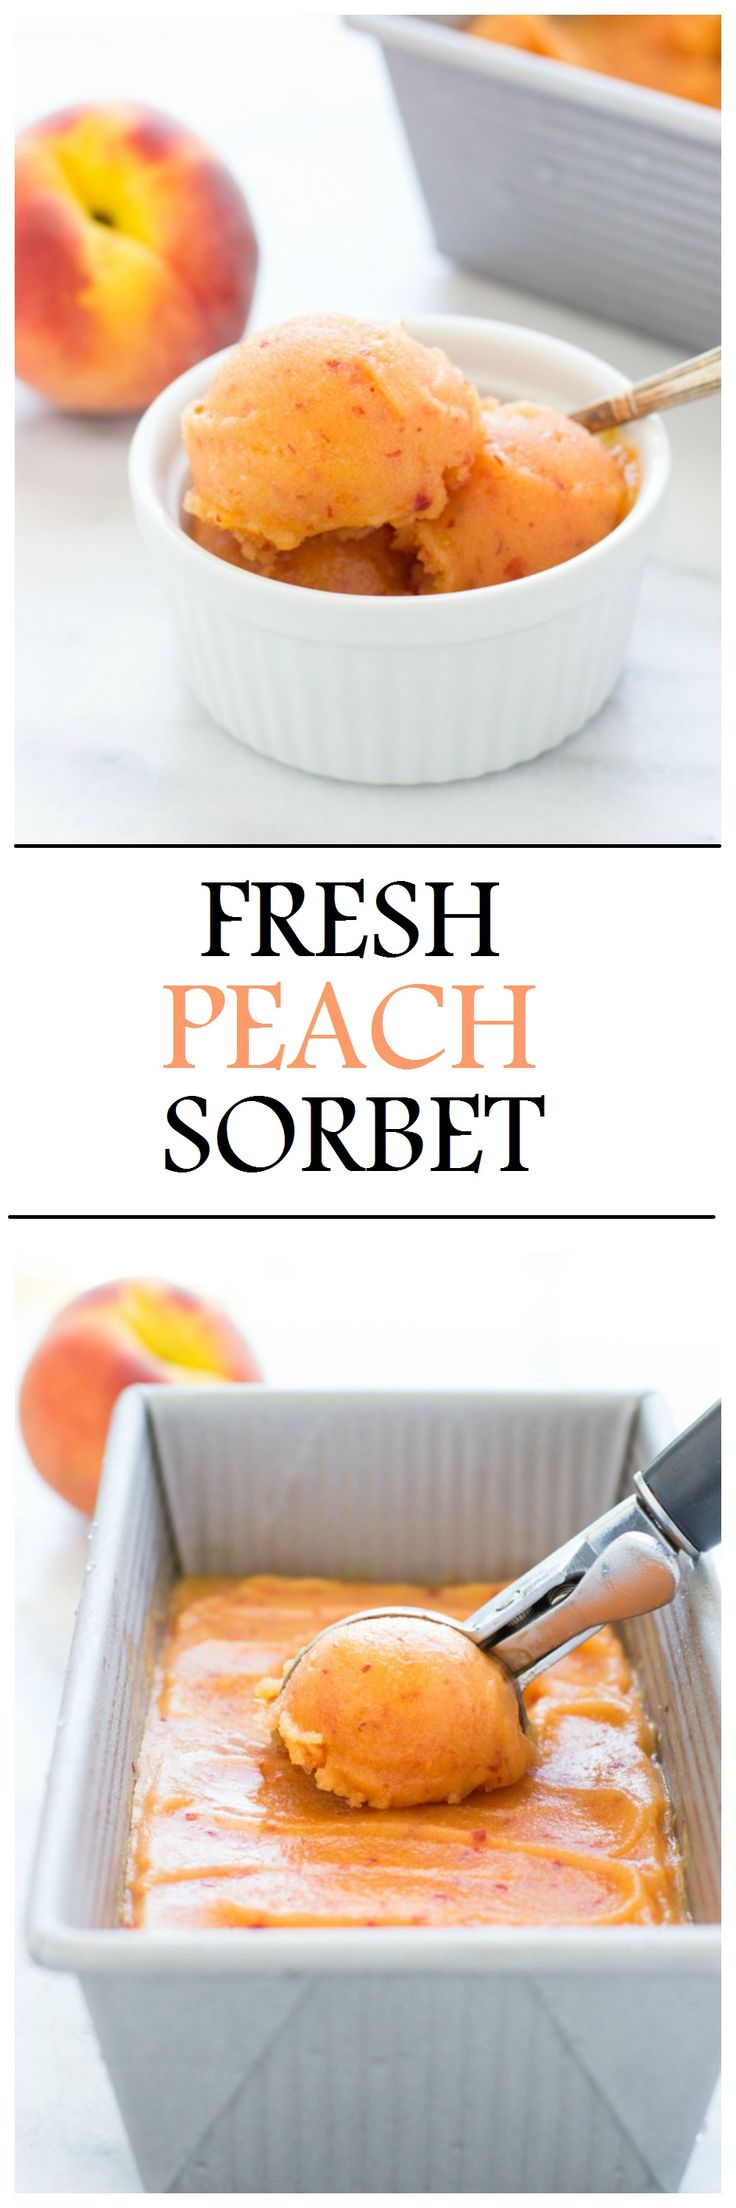 No Churn Fresh Peach Sorbet- made with just 4 simple ingredients! Dairy-free refined sugar-free only 100 calories per serving!